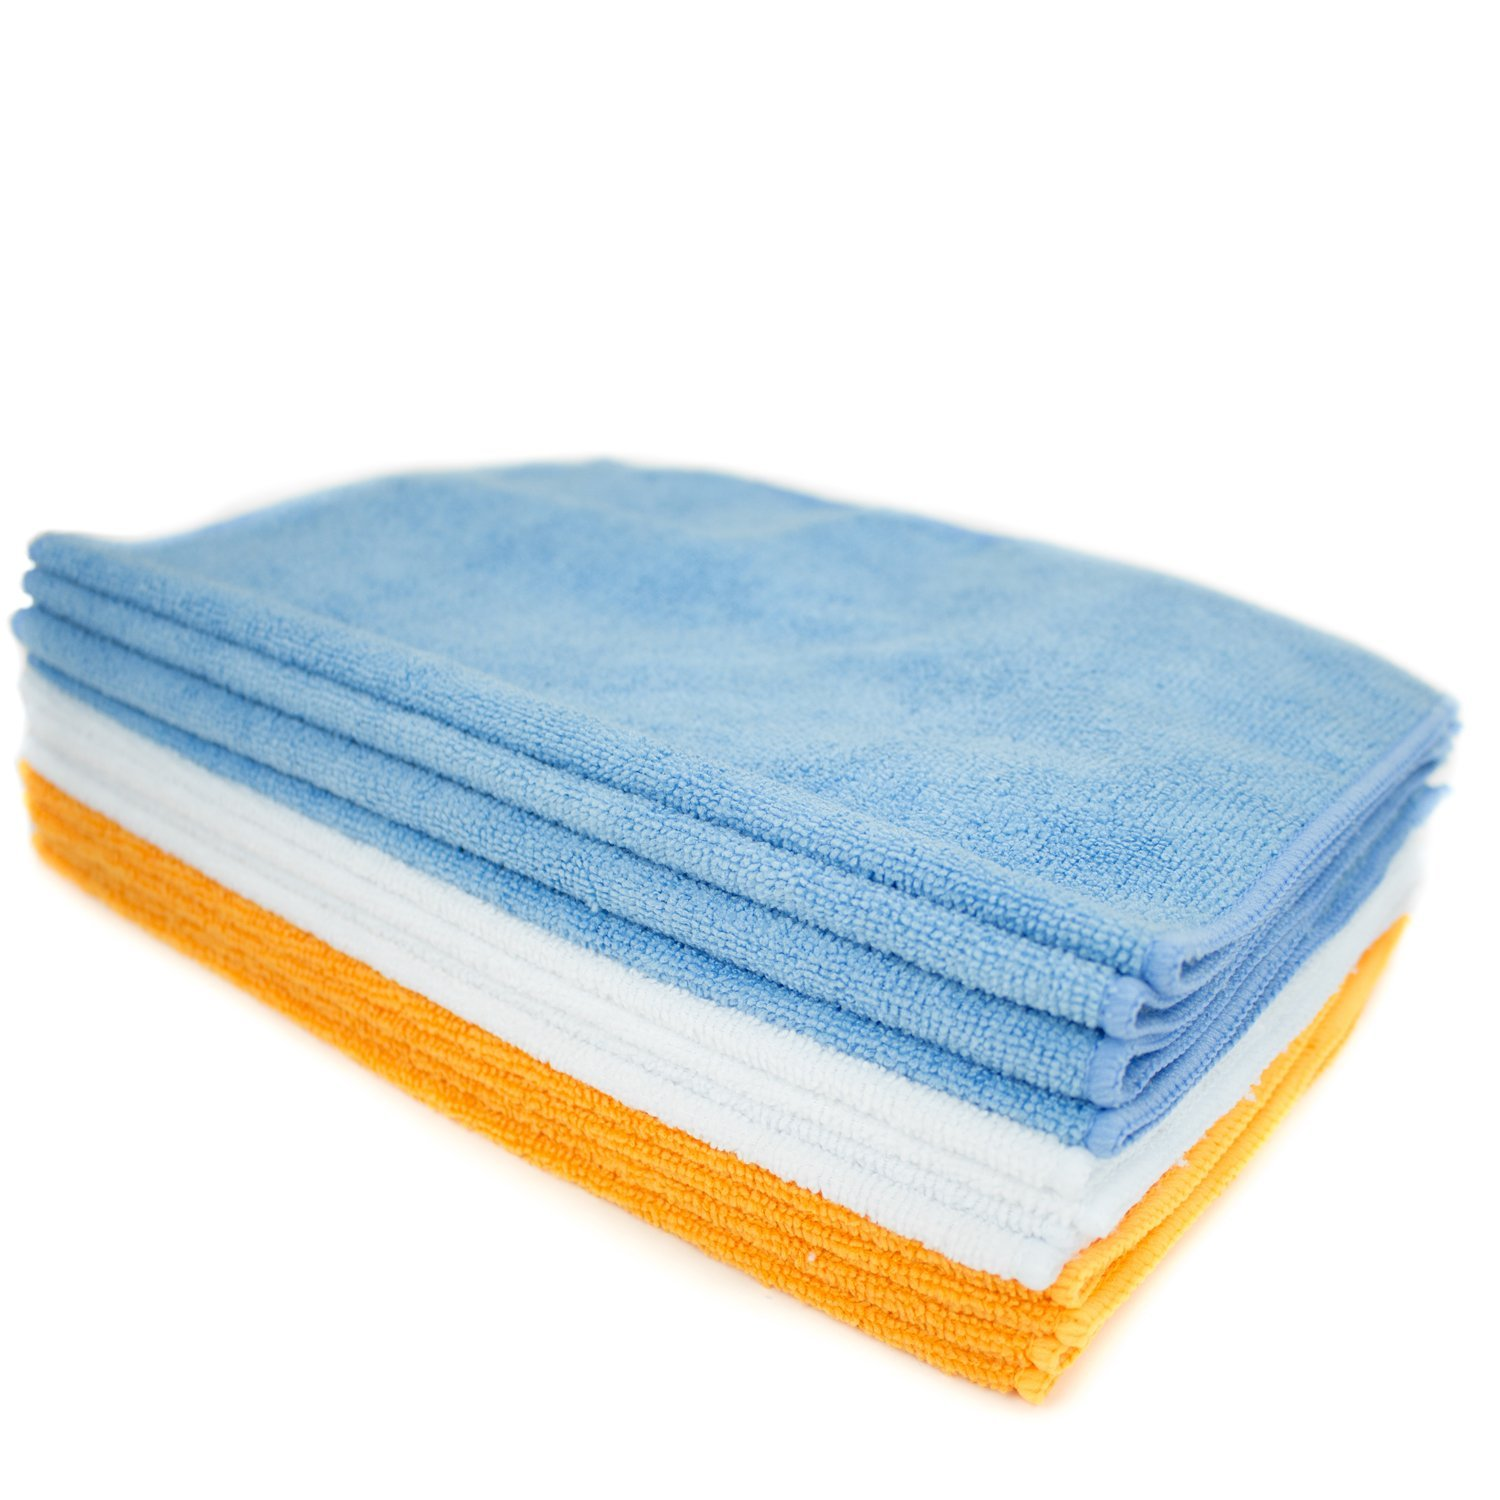 Microfiber Cleaning Cloths And Towels 12 Pack Zwipes Home